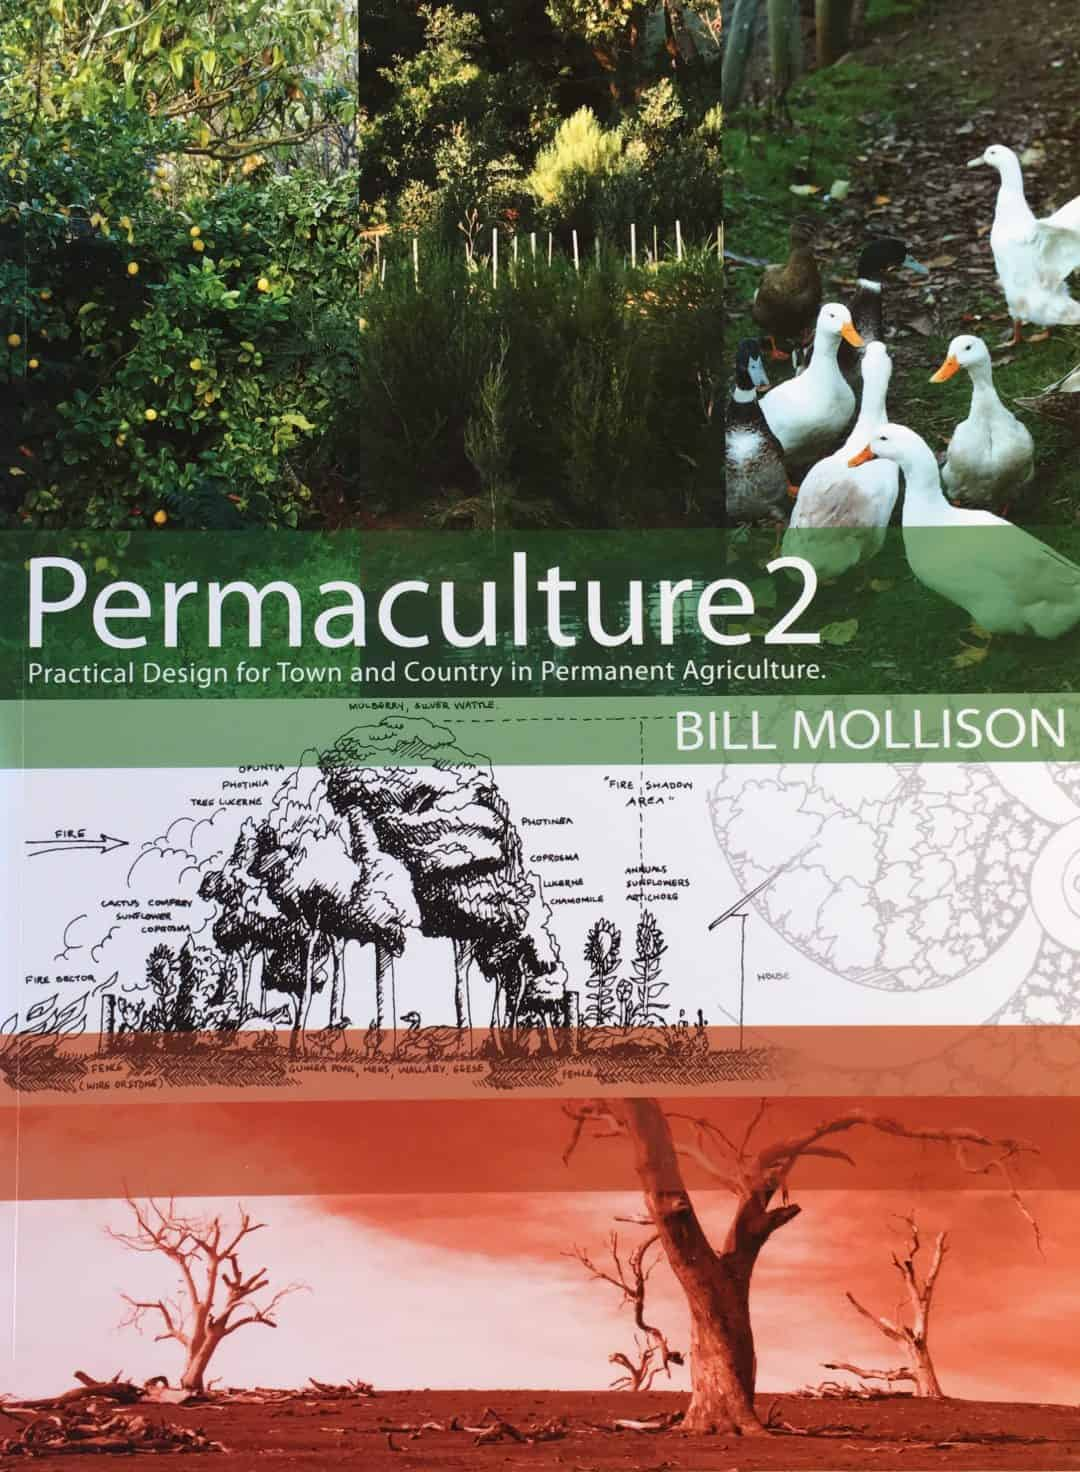 Imge of the cover of Permaculture Two by Bill Mollison